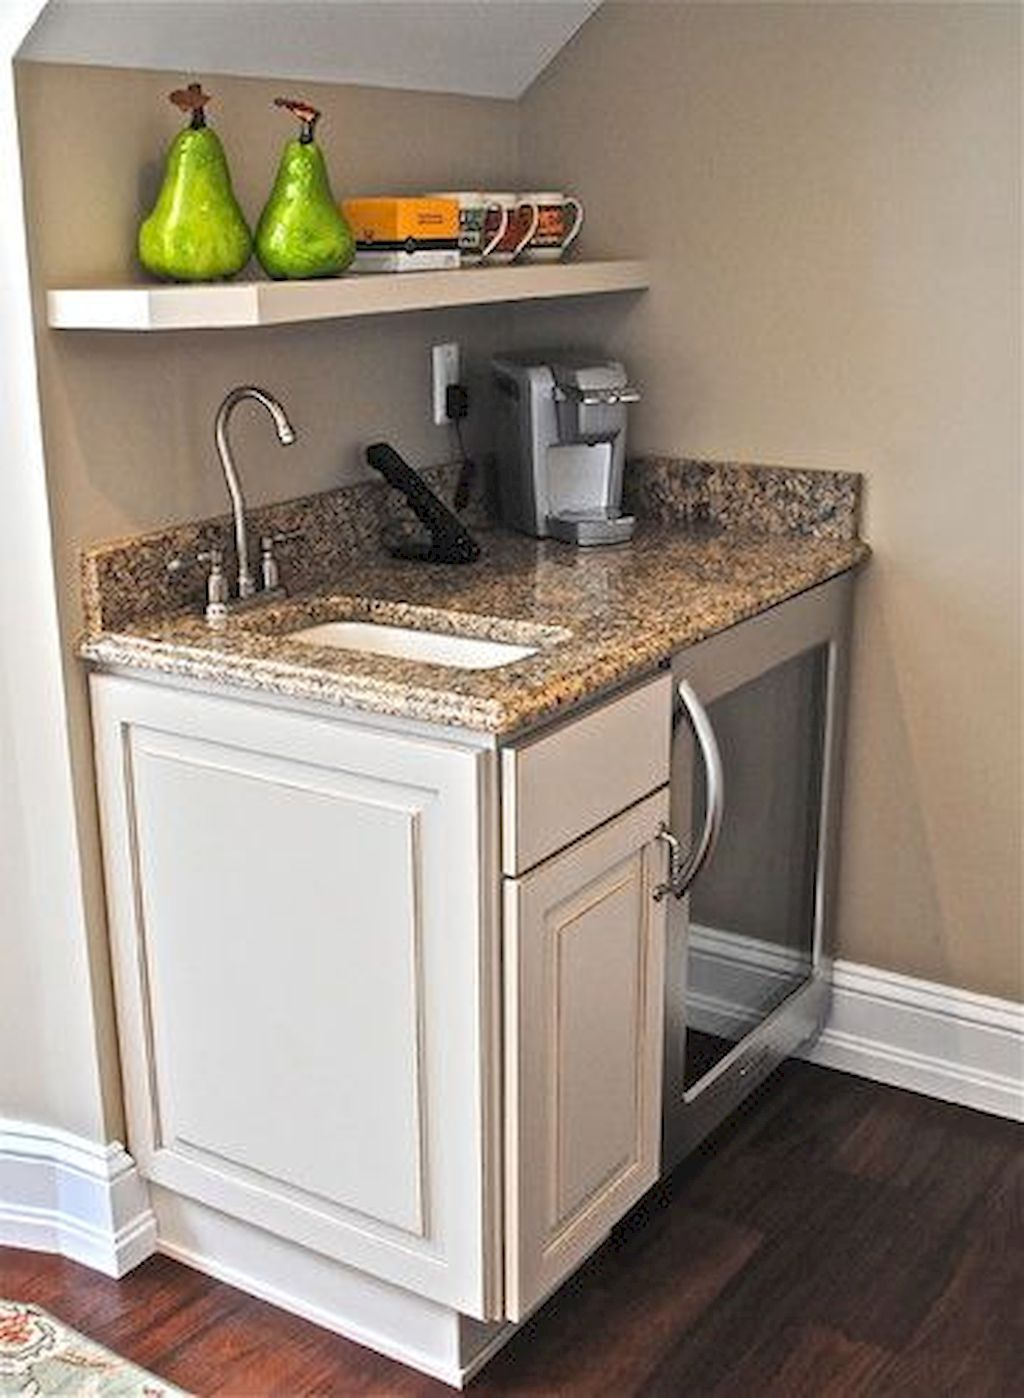 Small Kitchen Design 10x10: Small Kitchen Plan And Design For Small Room